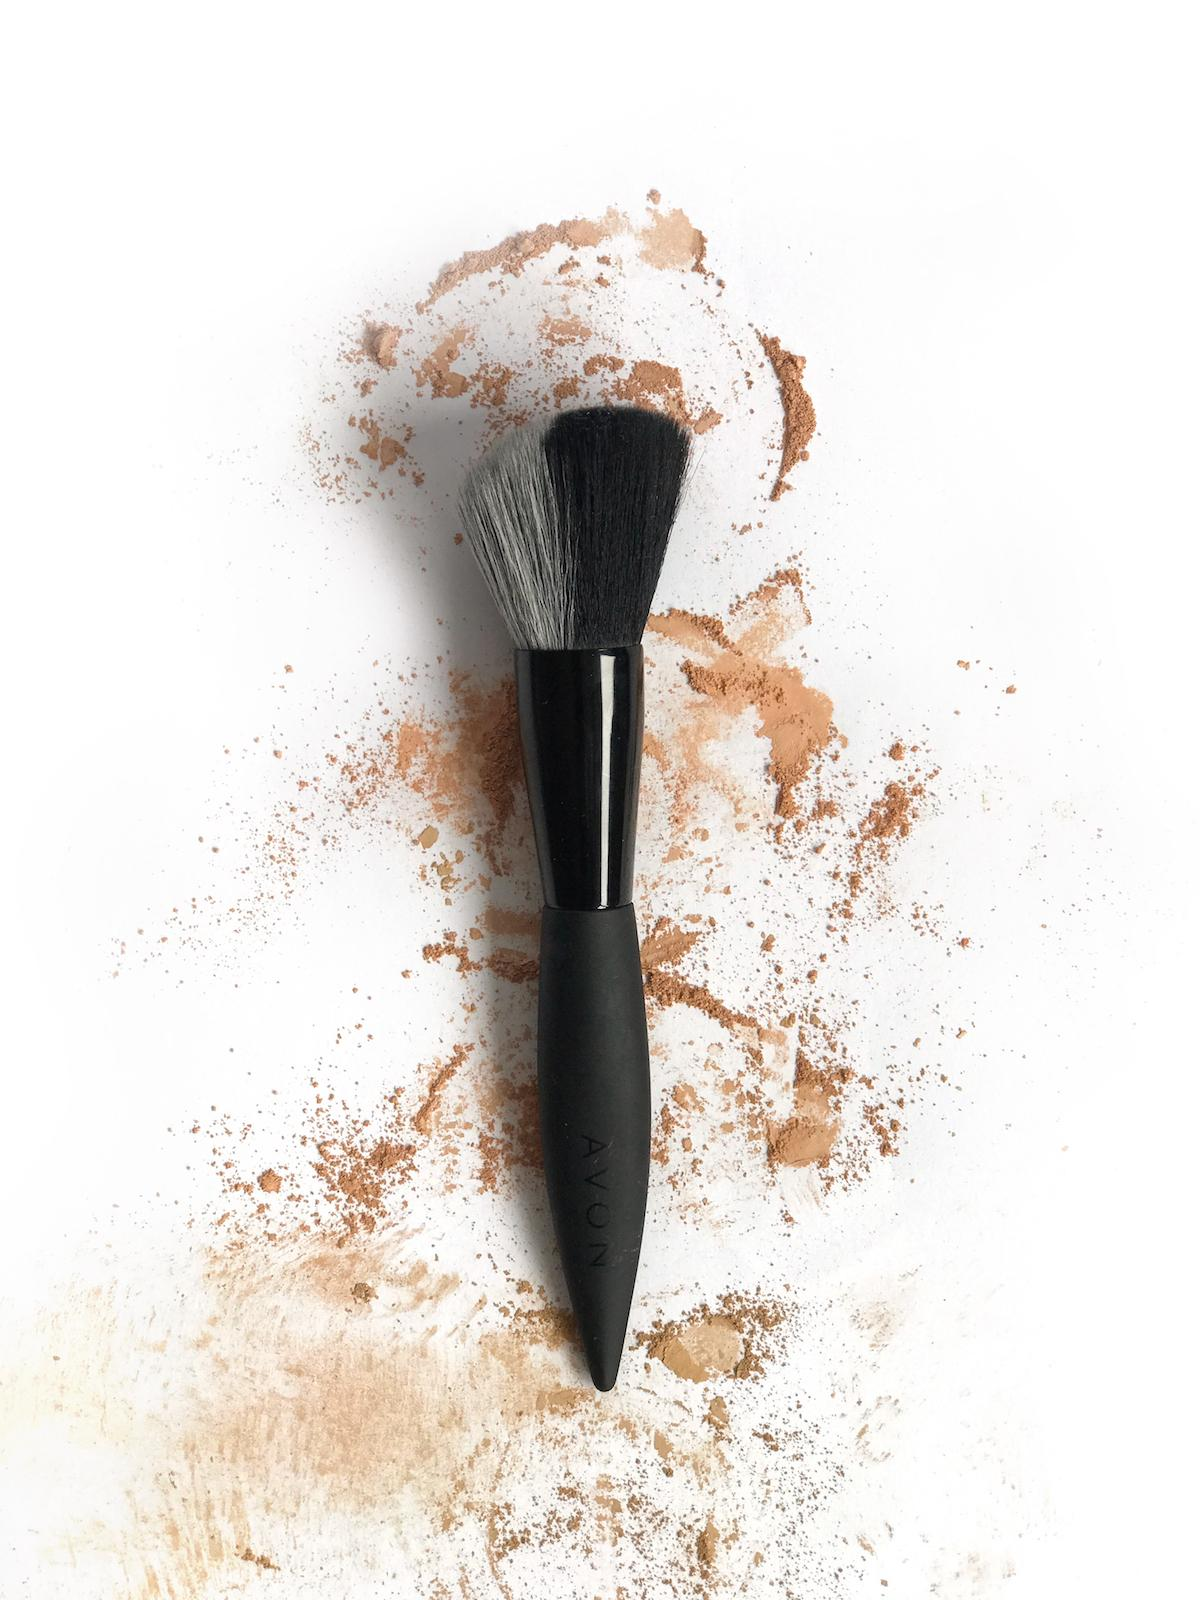 Avon Mark Angled Brush